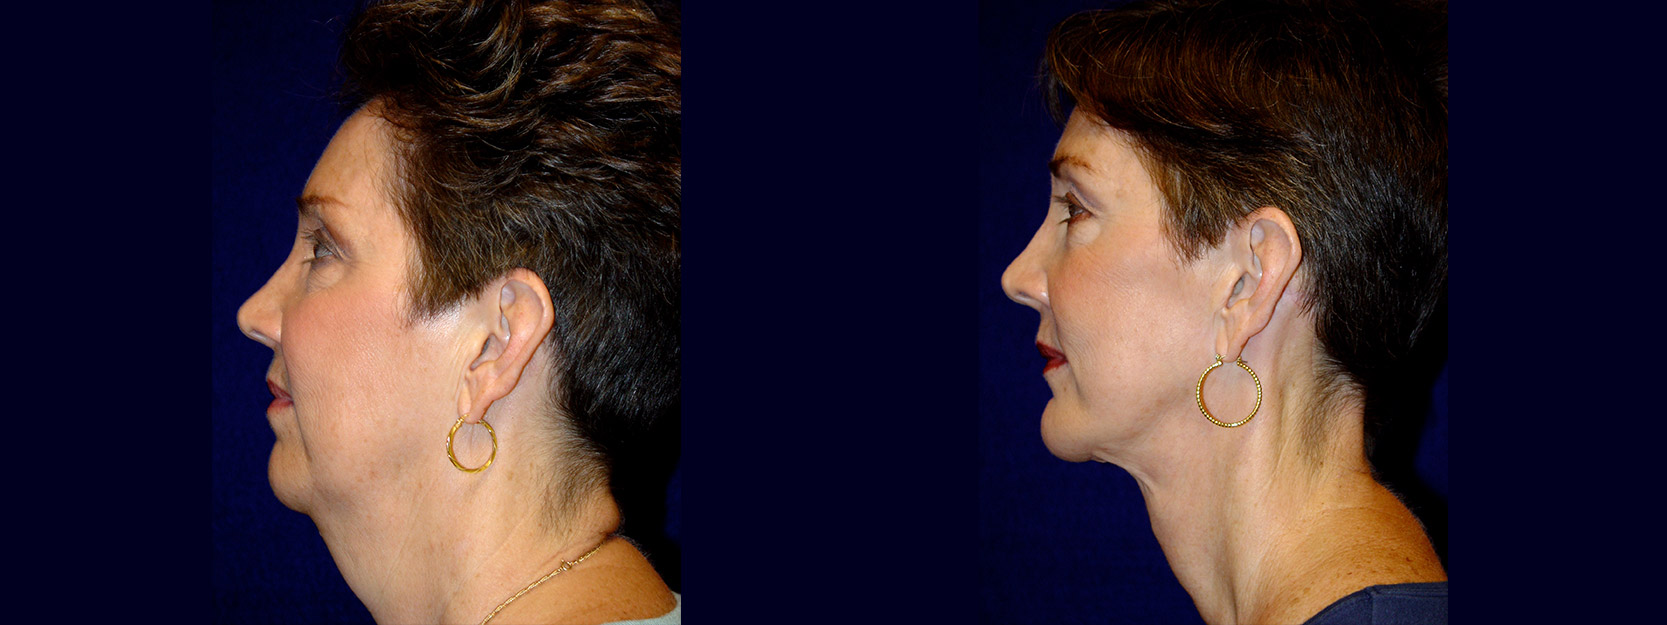 Left Profile View - Facelift & Chin Implant